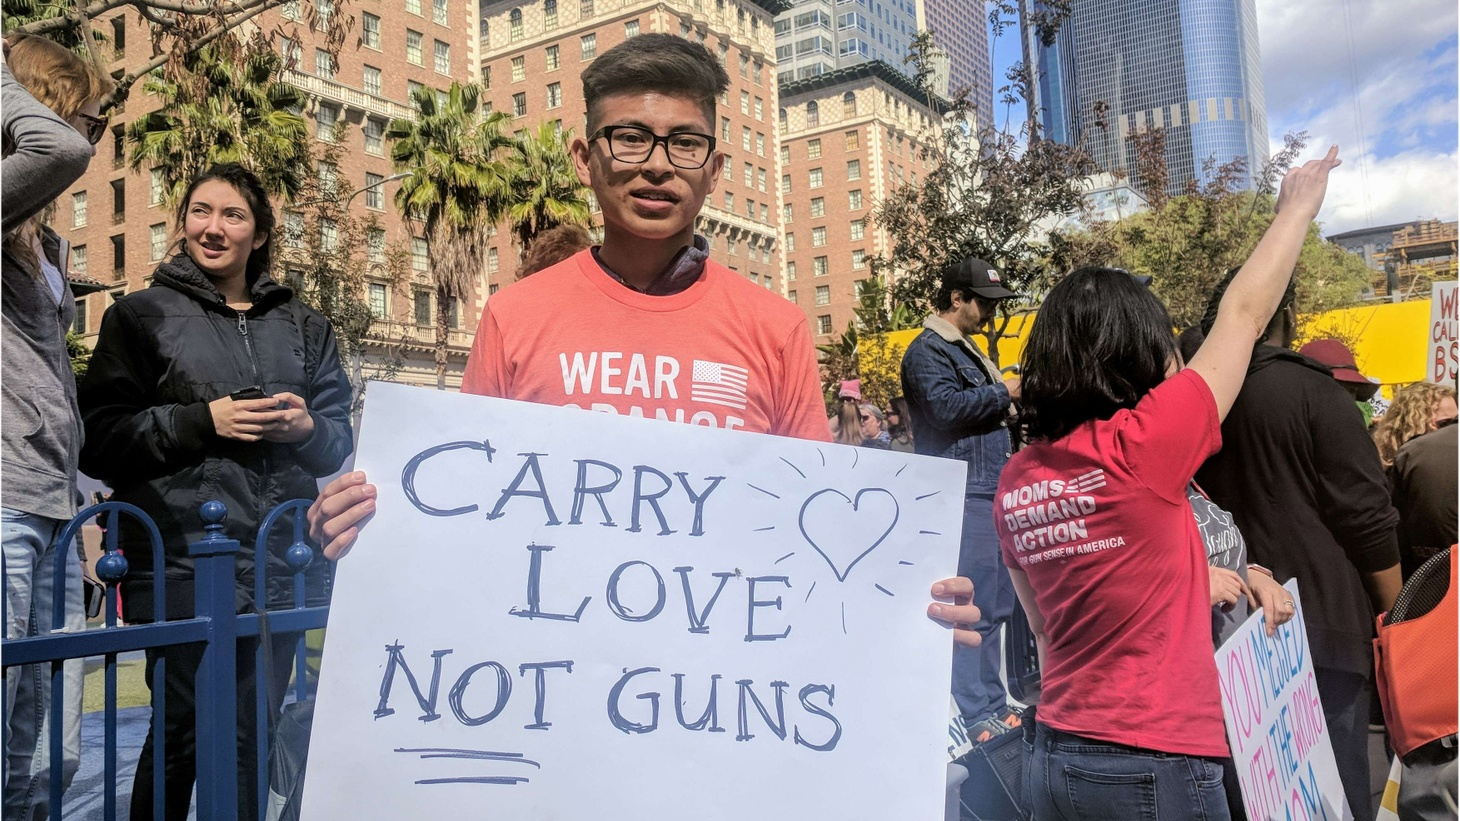 After the mass school shooting in Florida, many young people are taking action against guns. We talk about the growing protest movement with an 18-year-old activist in LA.